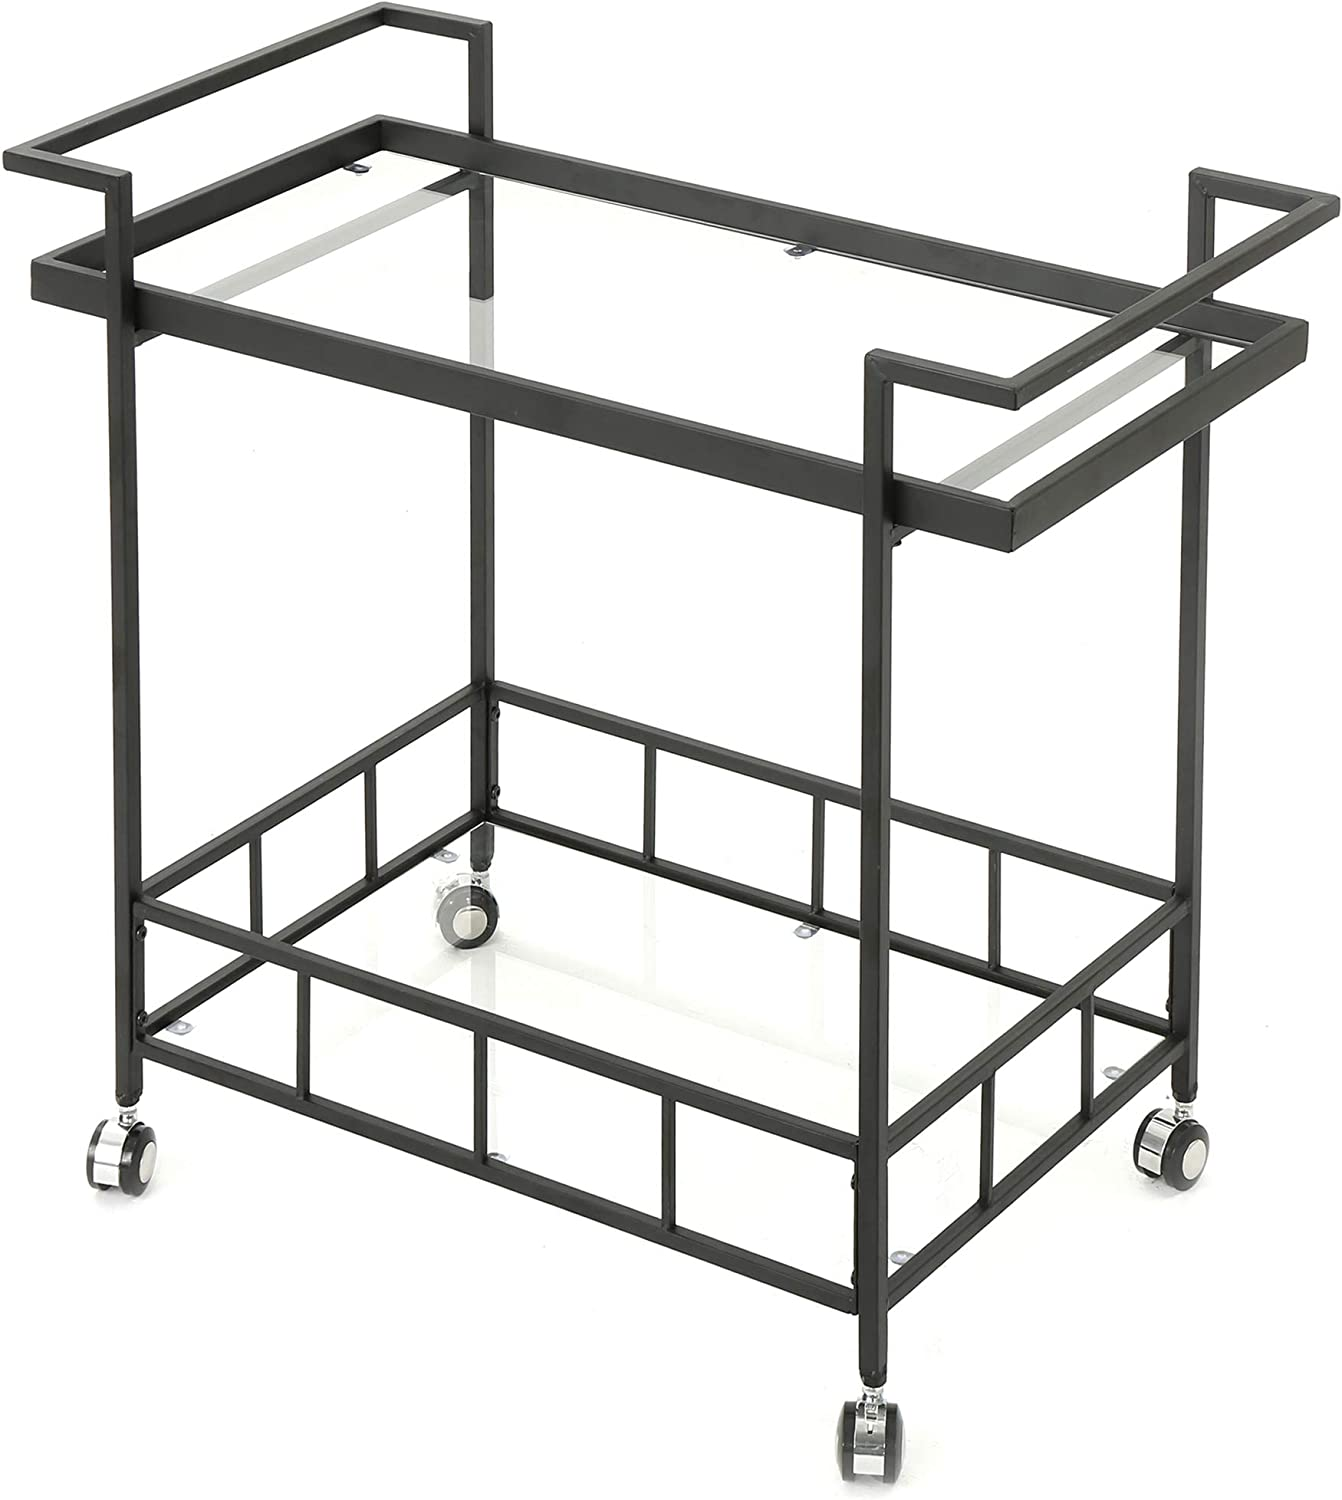 Christopher Knight Home Ambrose Indoor Industrial Iron Bar Cart with Tempered Glass Shelves, Black